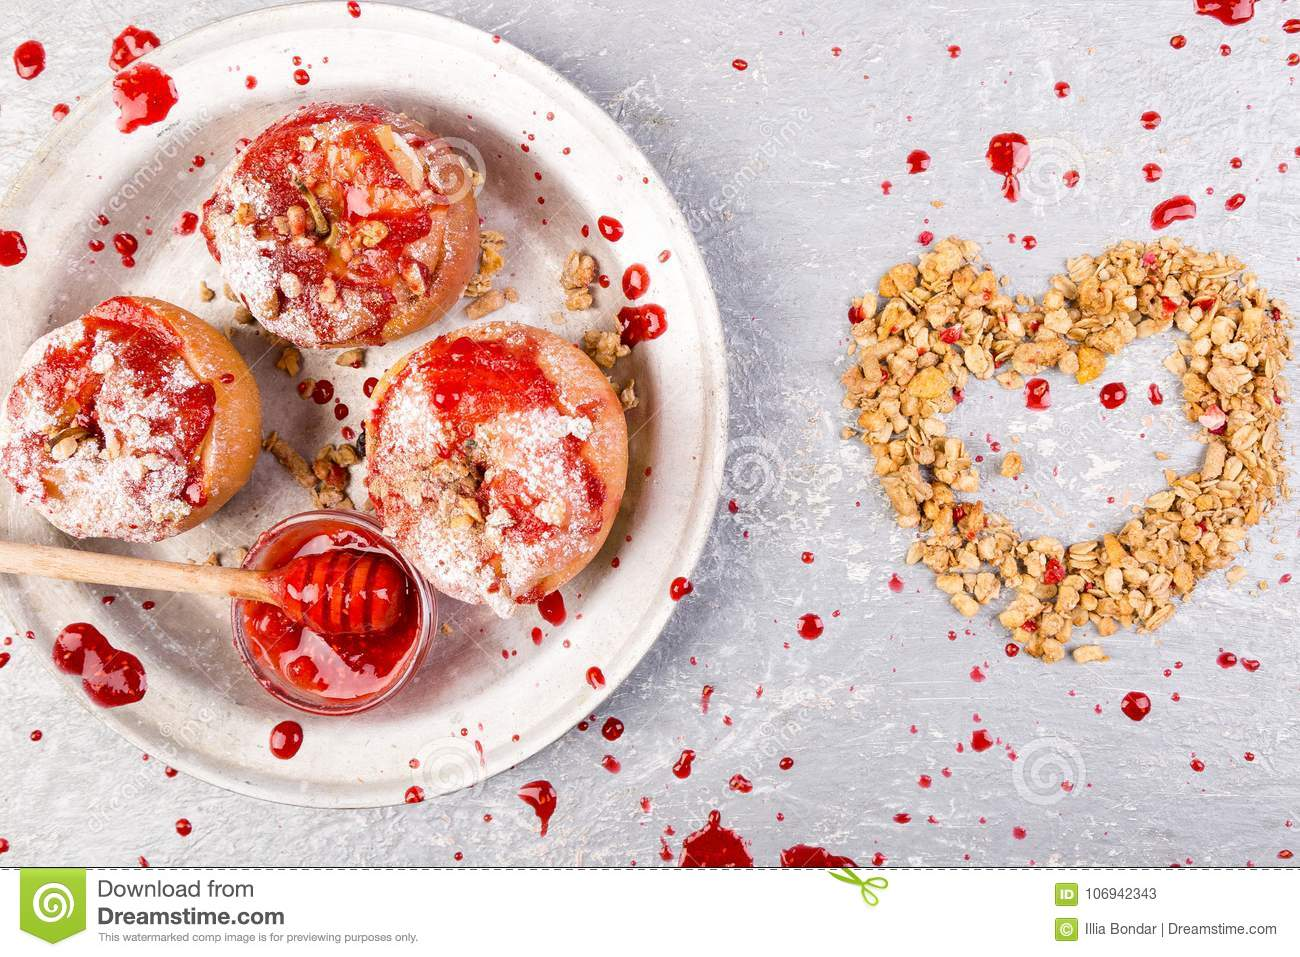 red baked apples stuffed cottage cheese and granola with jam rh dreamstime com keto diet foods cottage cheese Cottage Cheese and Weight Loss